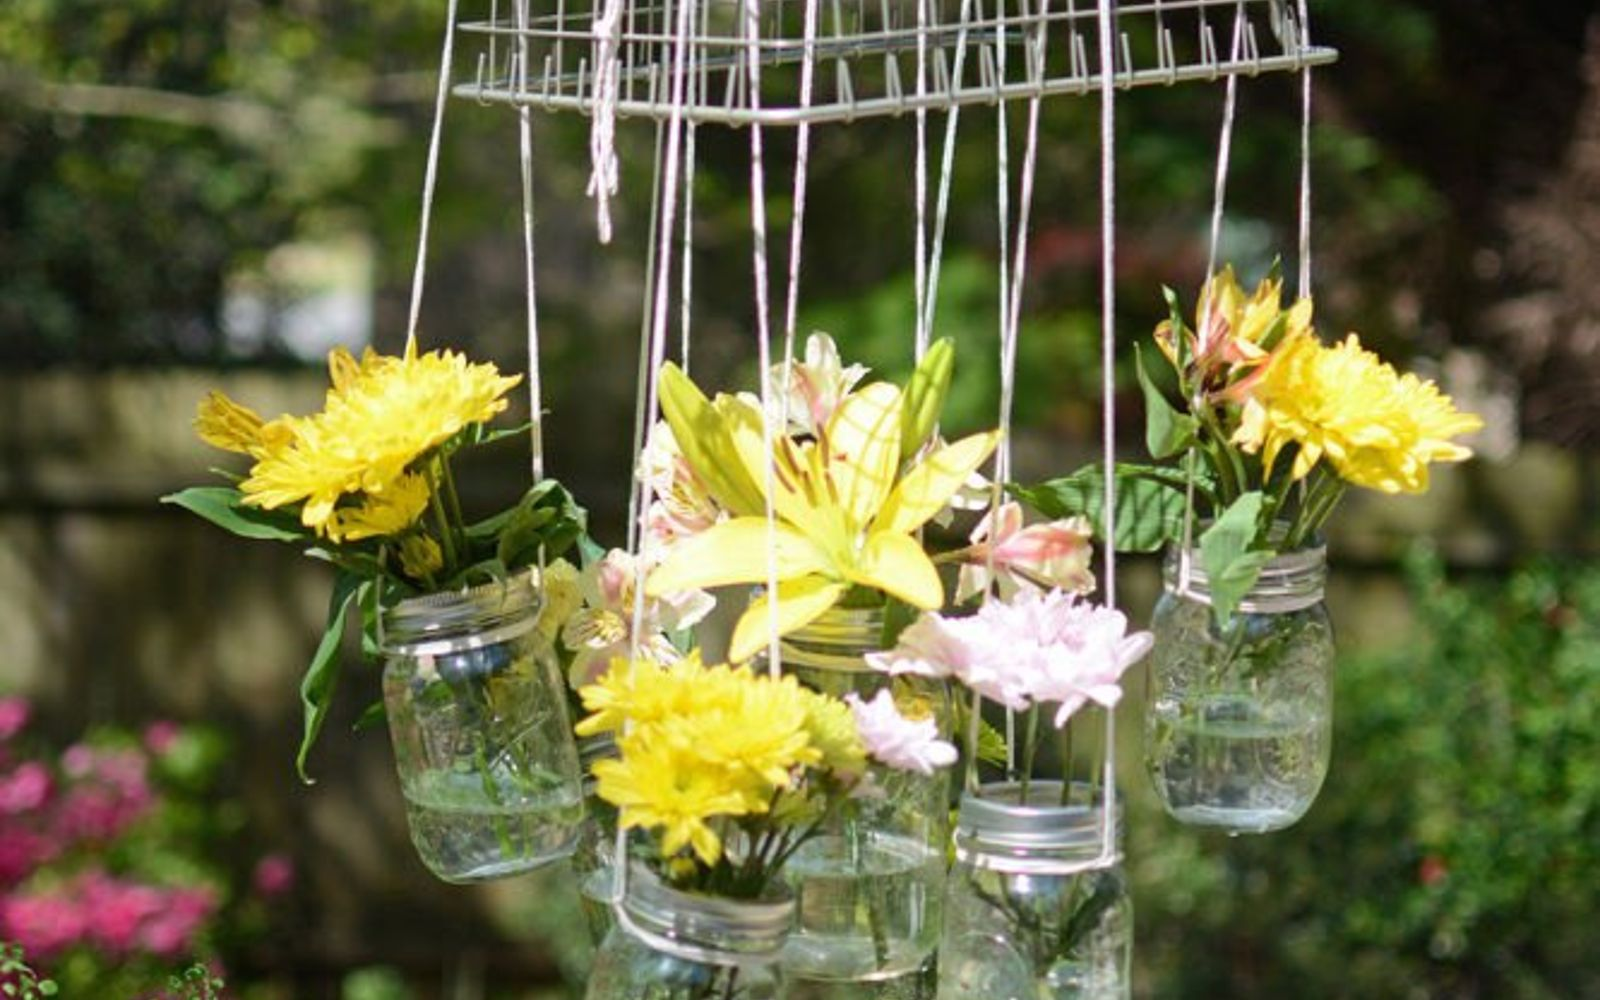 s 11 gardening hacks using empty glass jars, gardening, repurposing upcycling, Bring more blooms into colorless garden spots